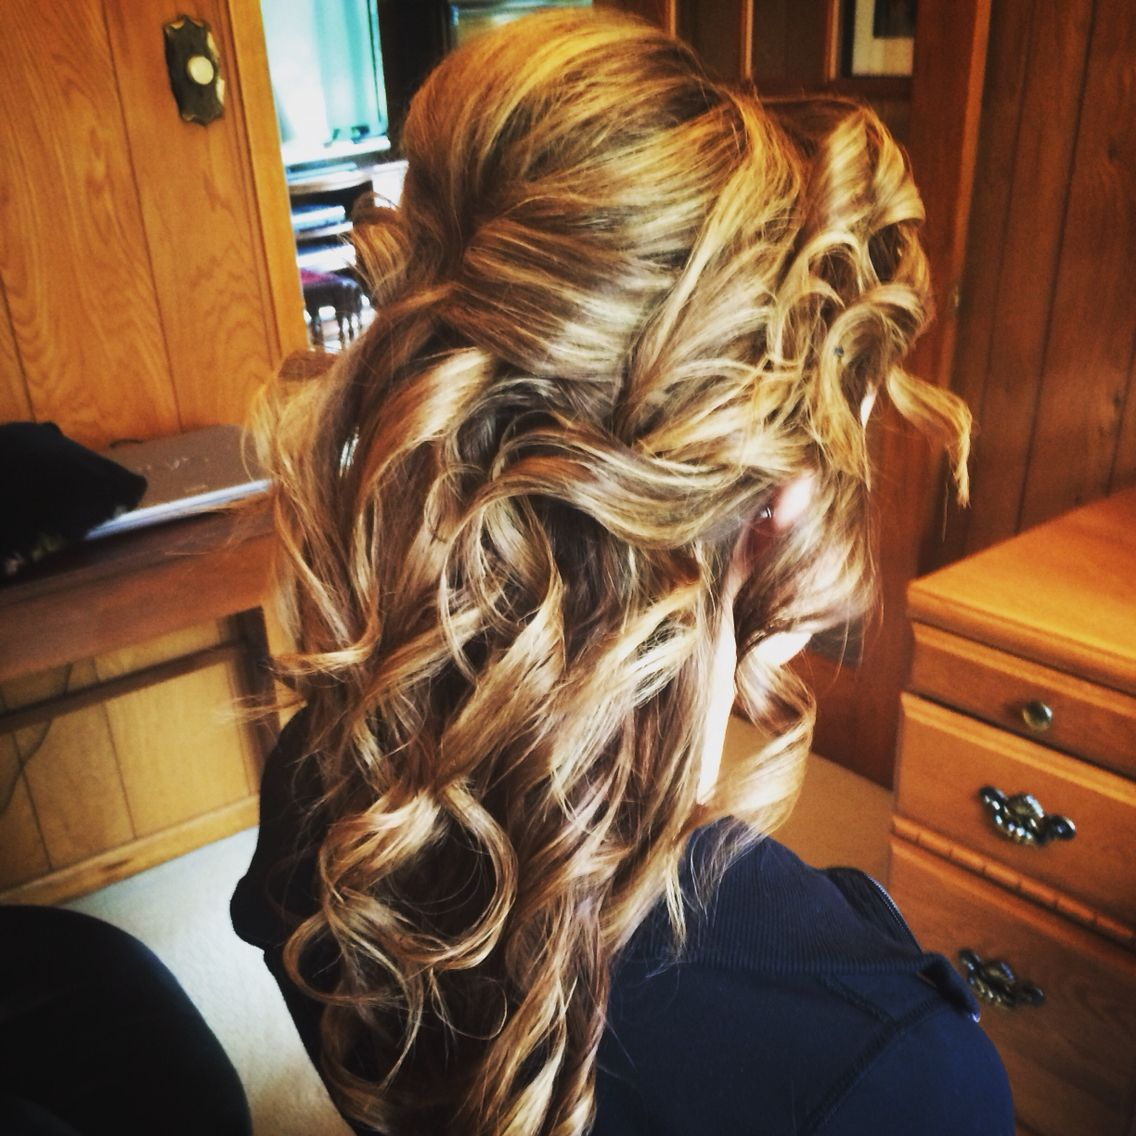 Half up half down bridal hairstyle with loose romantic curls by